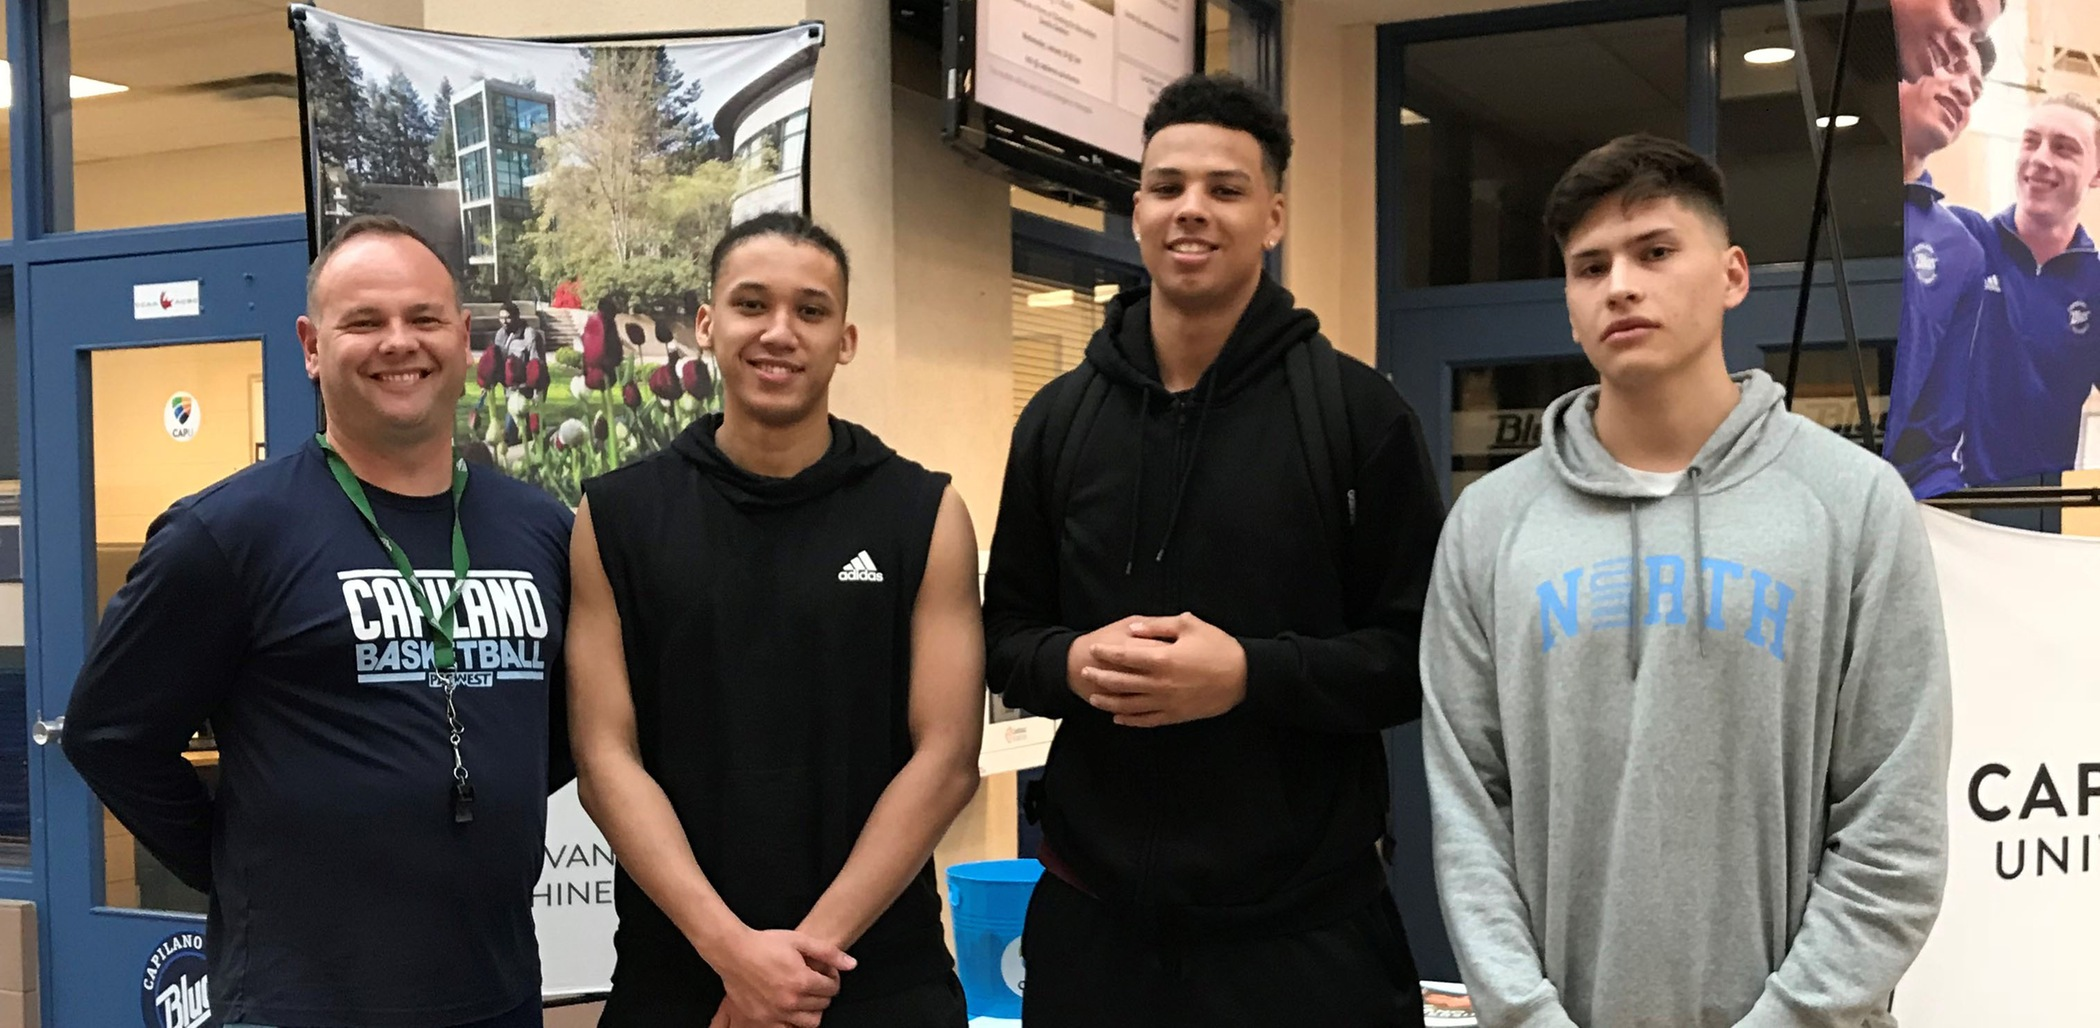 Blues head coach Cassidy Kannemeyer alongside new recruits Jonavan Grant, Rhys Blake, and Sterling Peterson at the CapU men's basketball ID Camp in April.